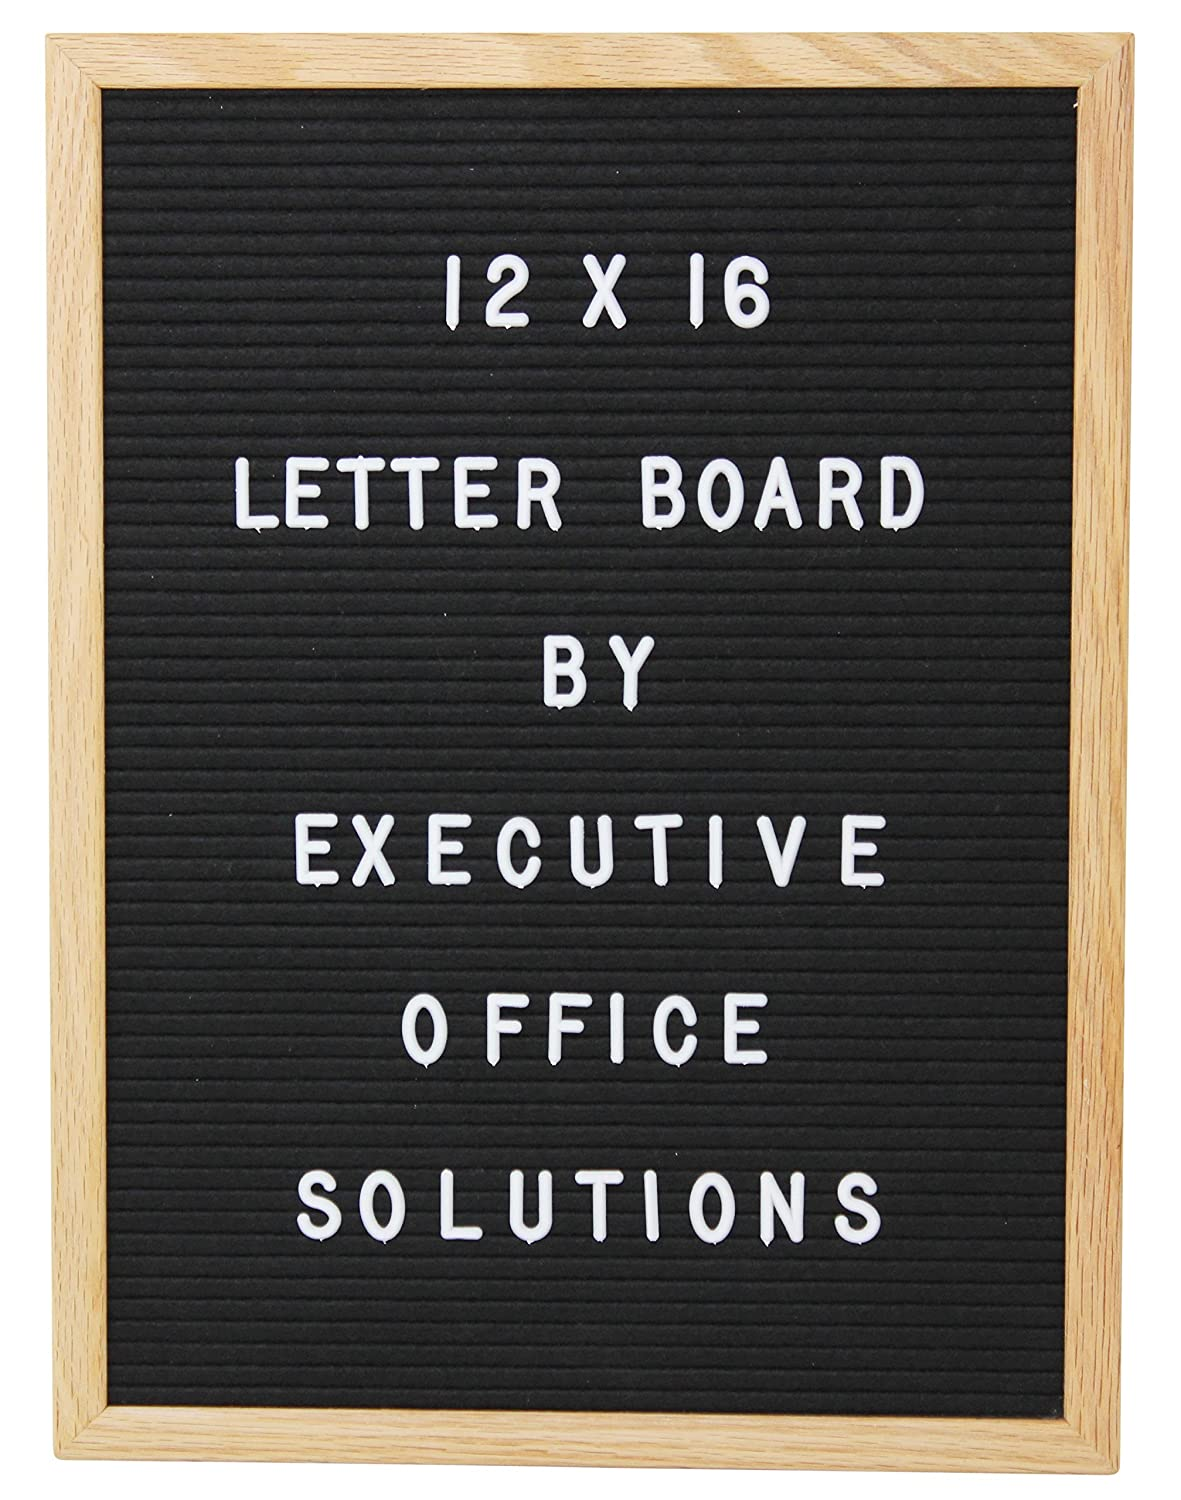 12 x 16 Changeable Letter Board - Black With Solid Oak Frame, Wall Mount, Canvas Bag, and 290 Characters - by Executive Office Solutions